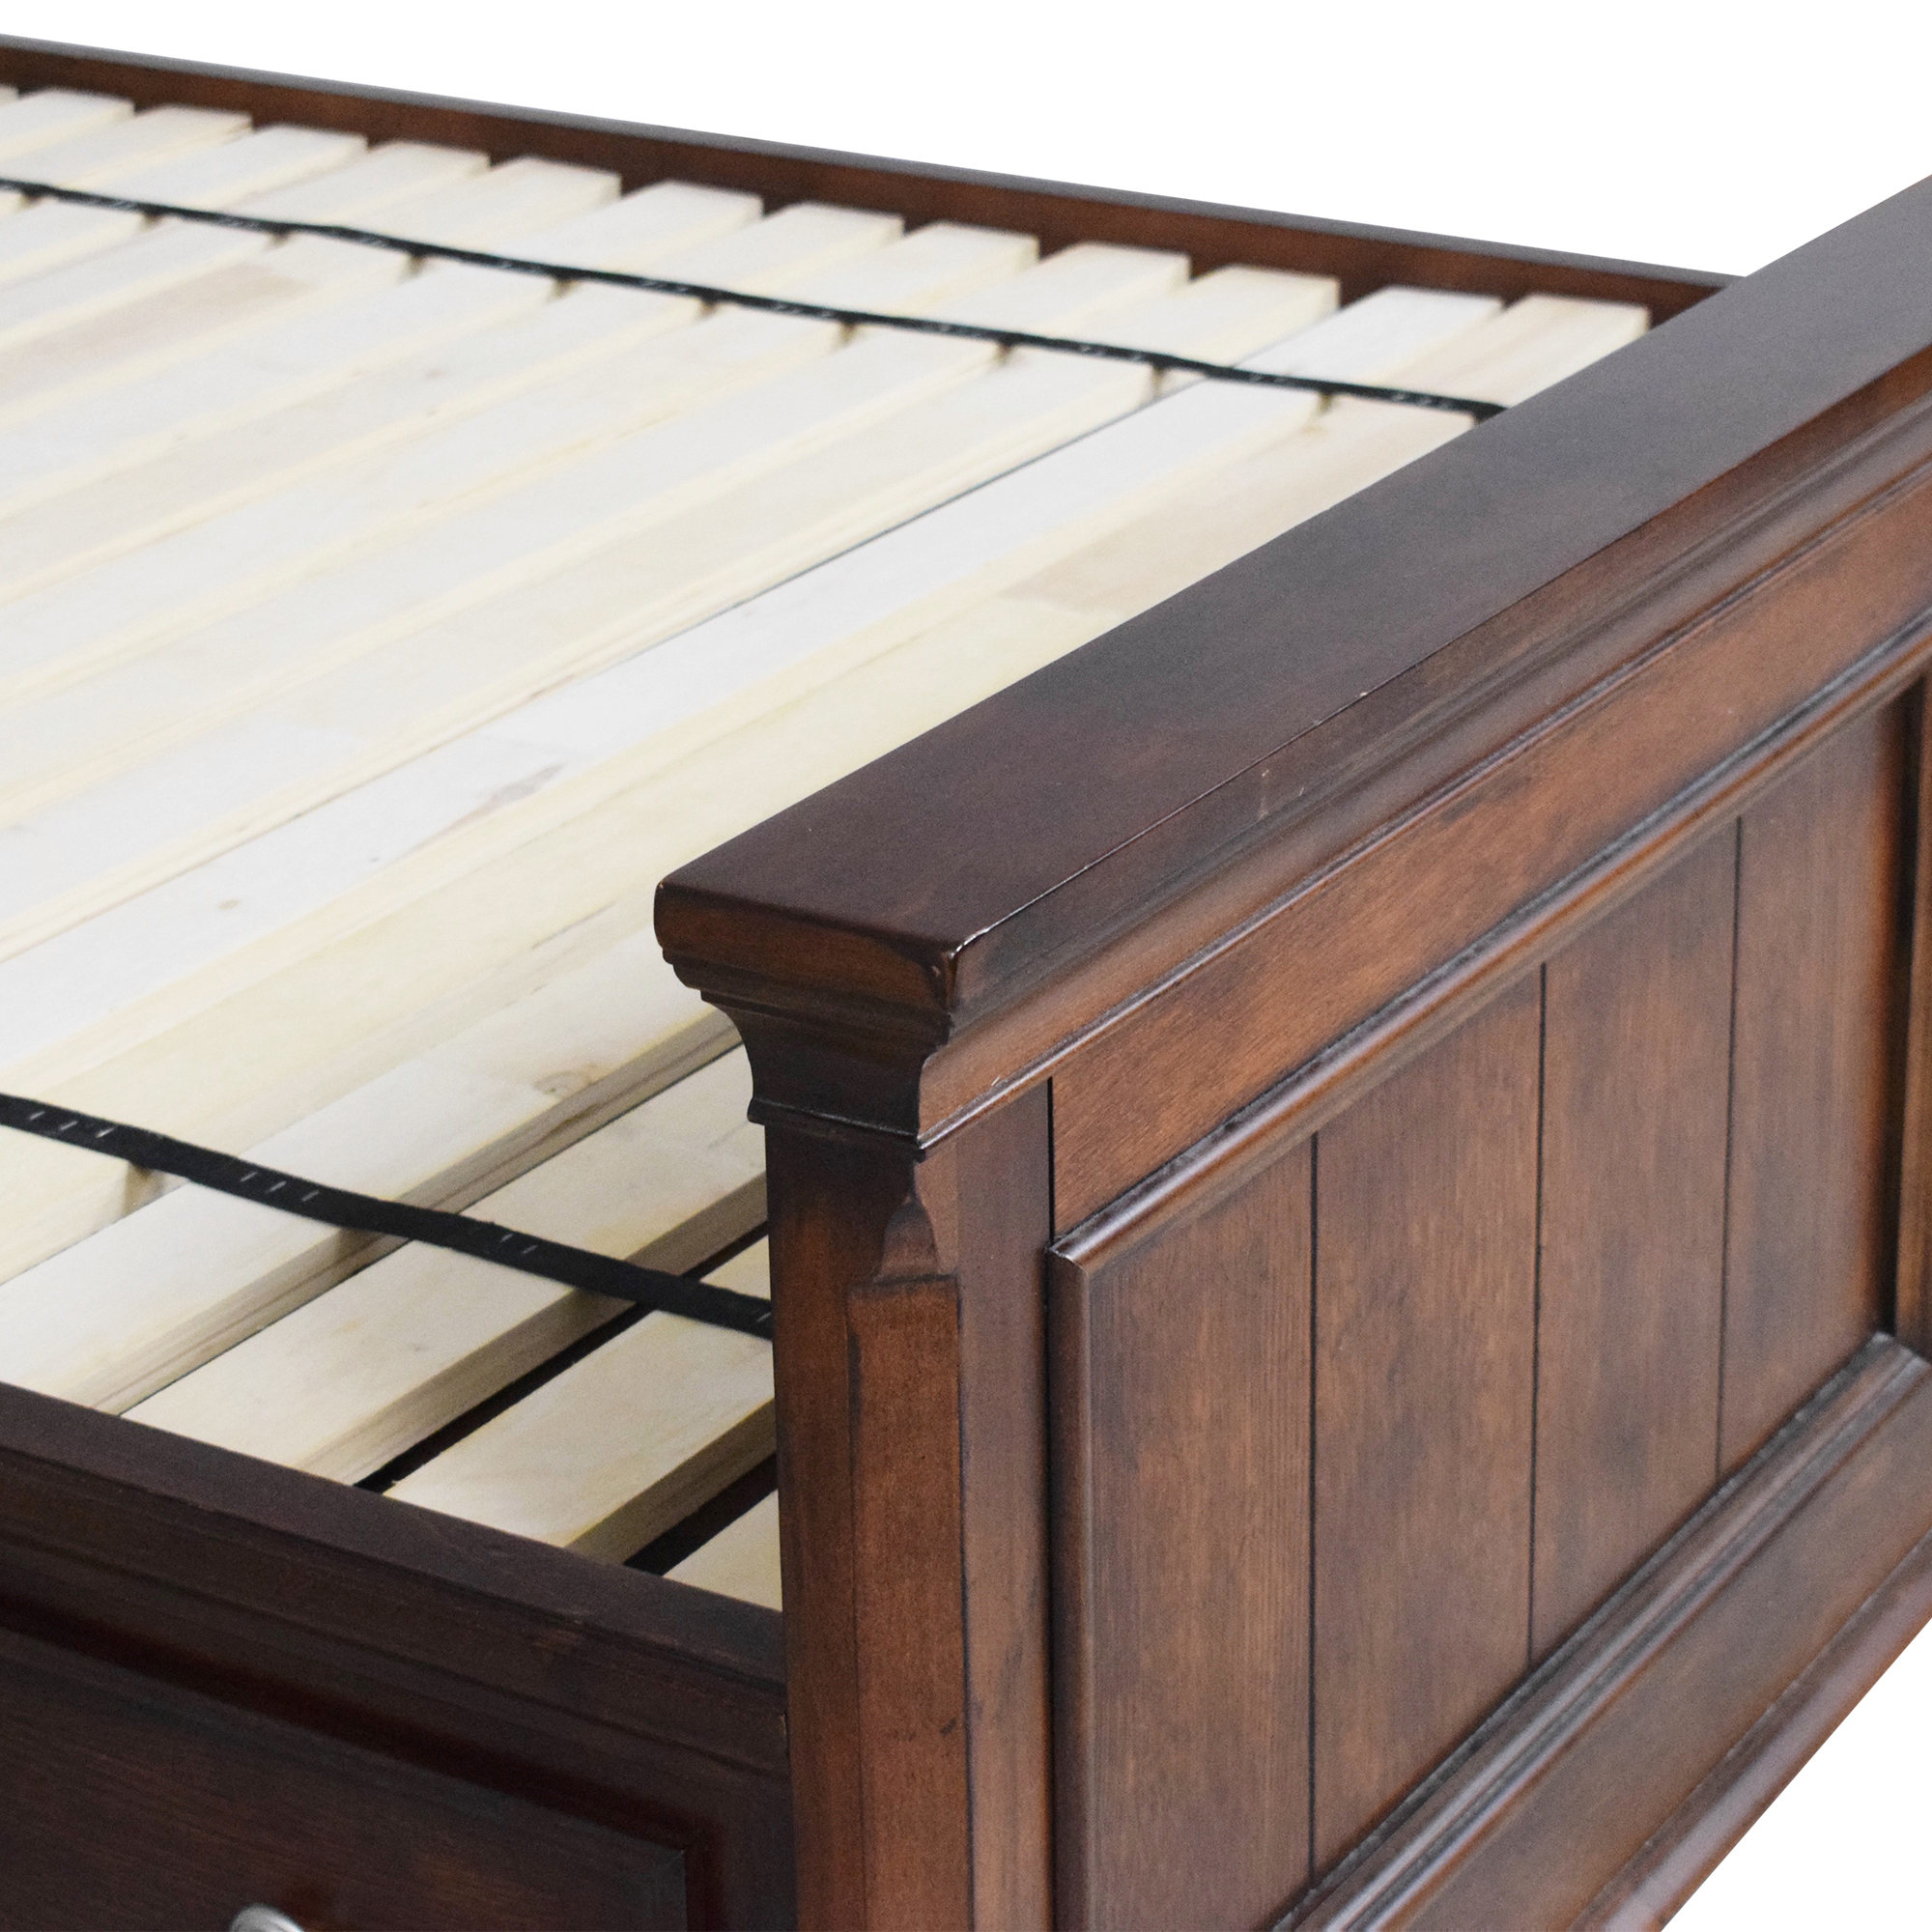 buy Raymour & Flanigan Legacy Storage Queen Bed Raymour & Flanigan Bed Frames